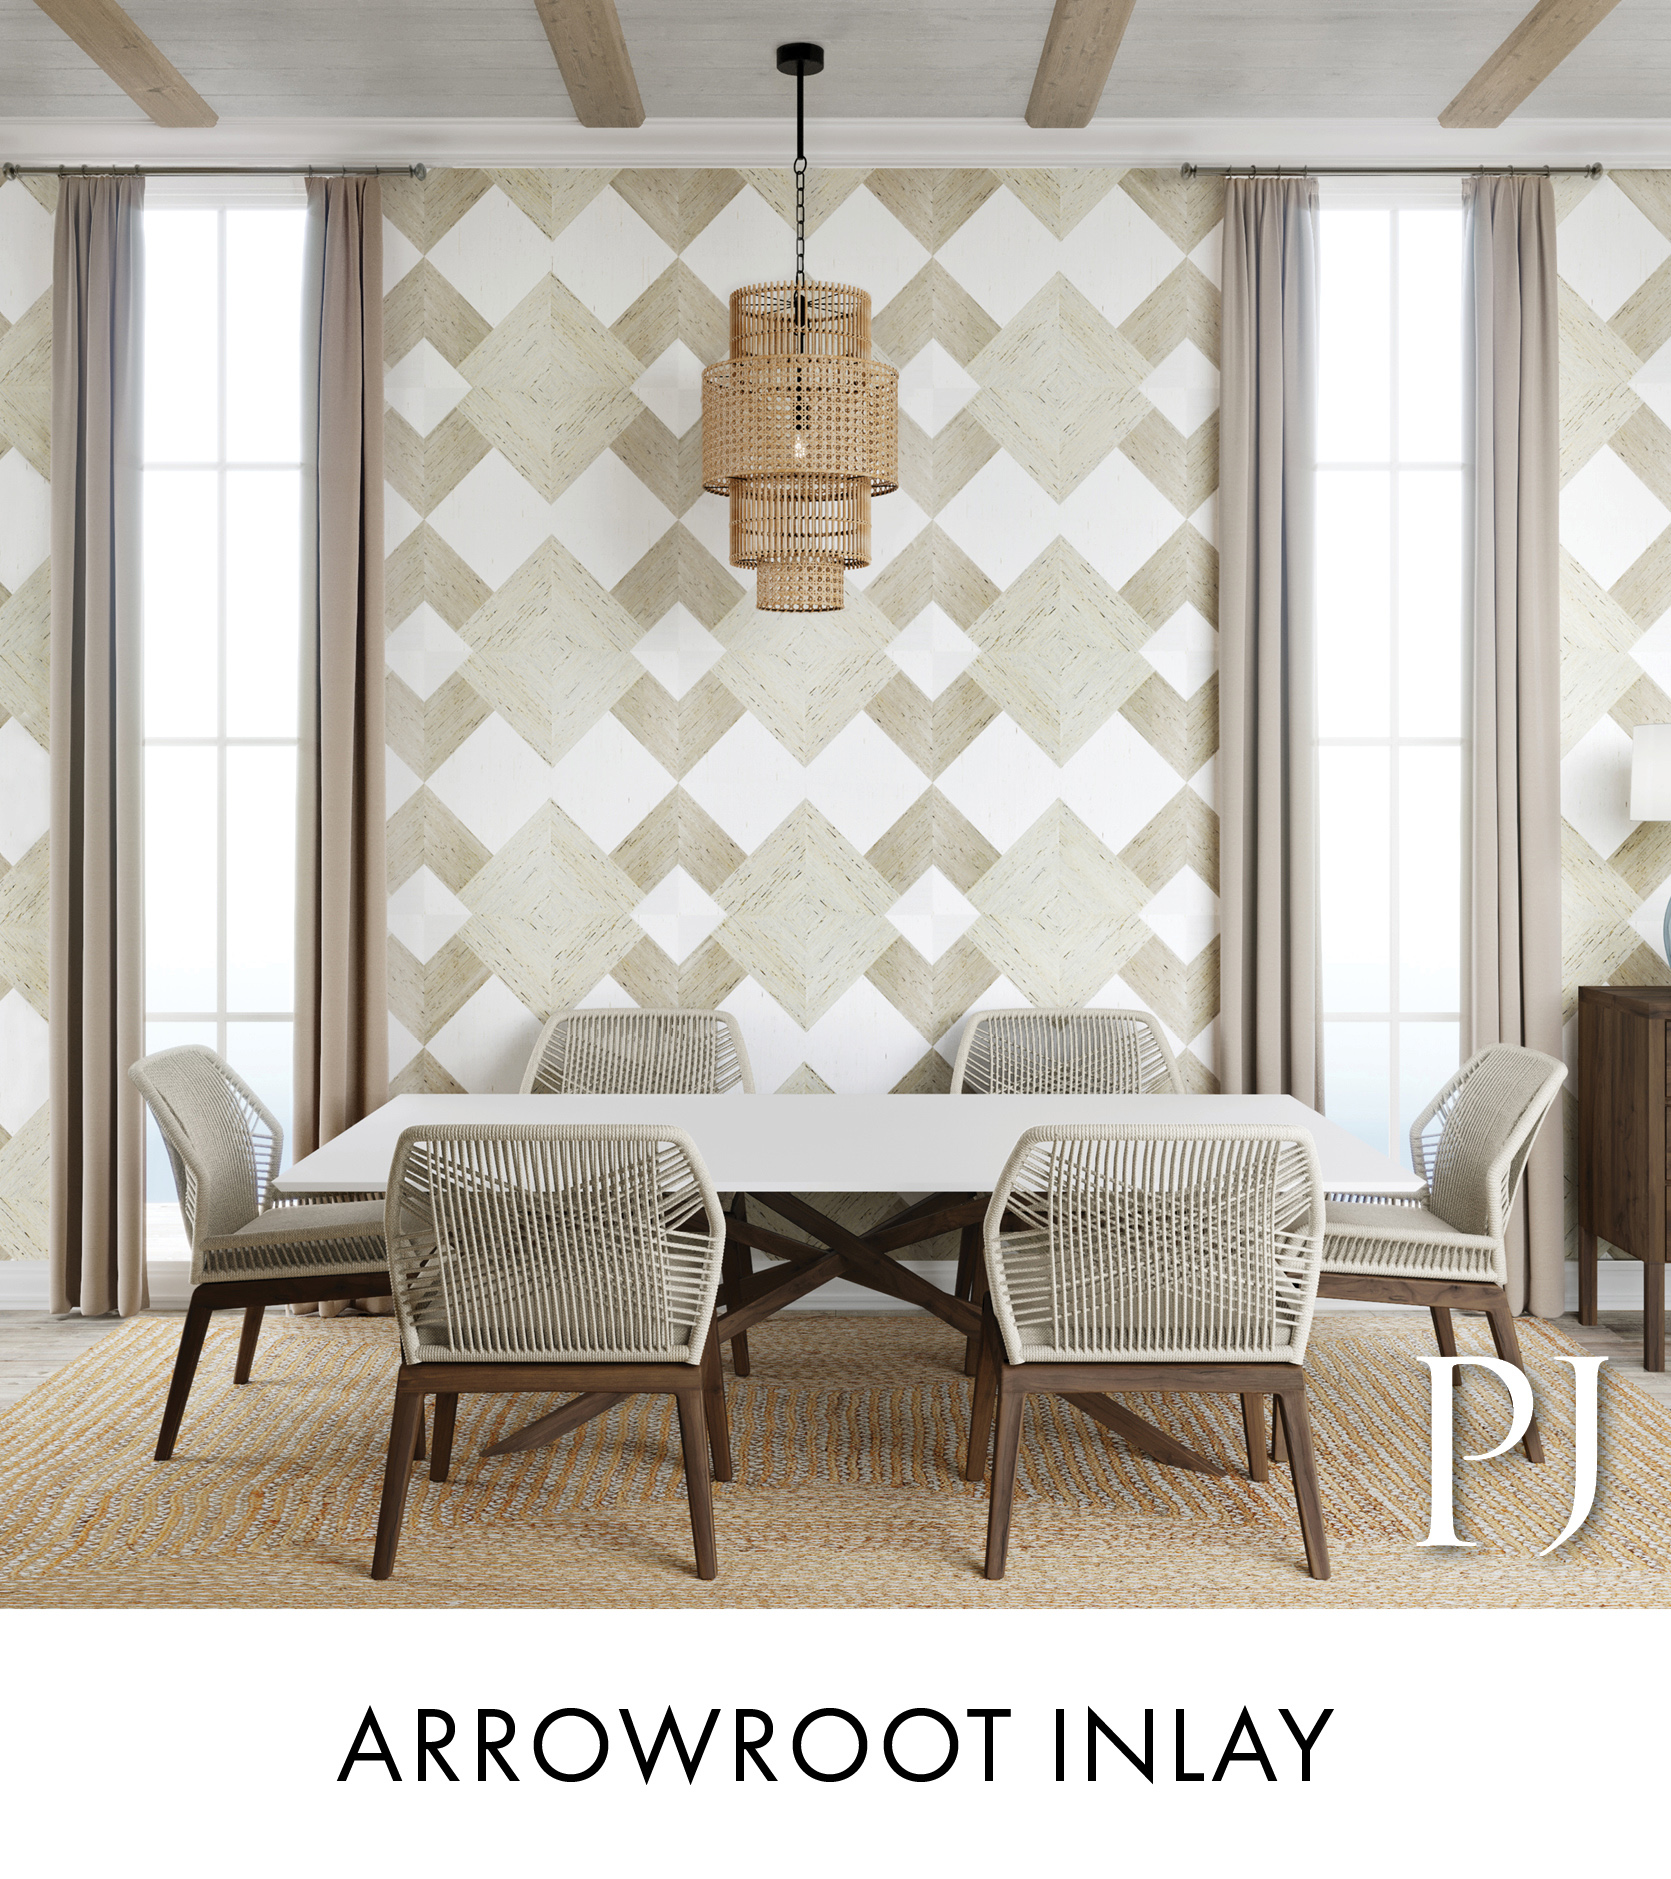 Arrowroot Inlay